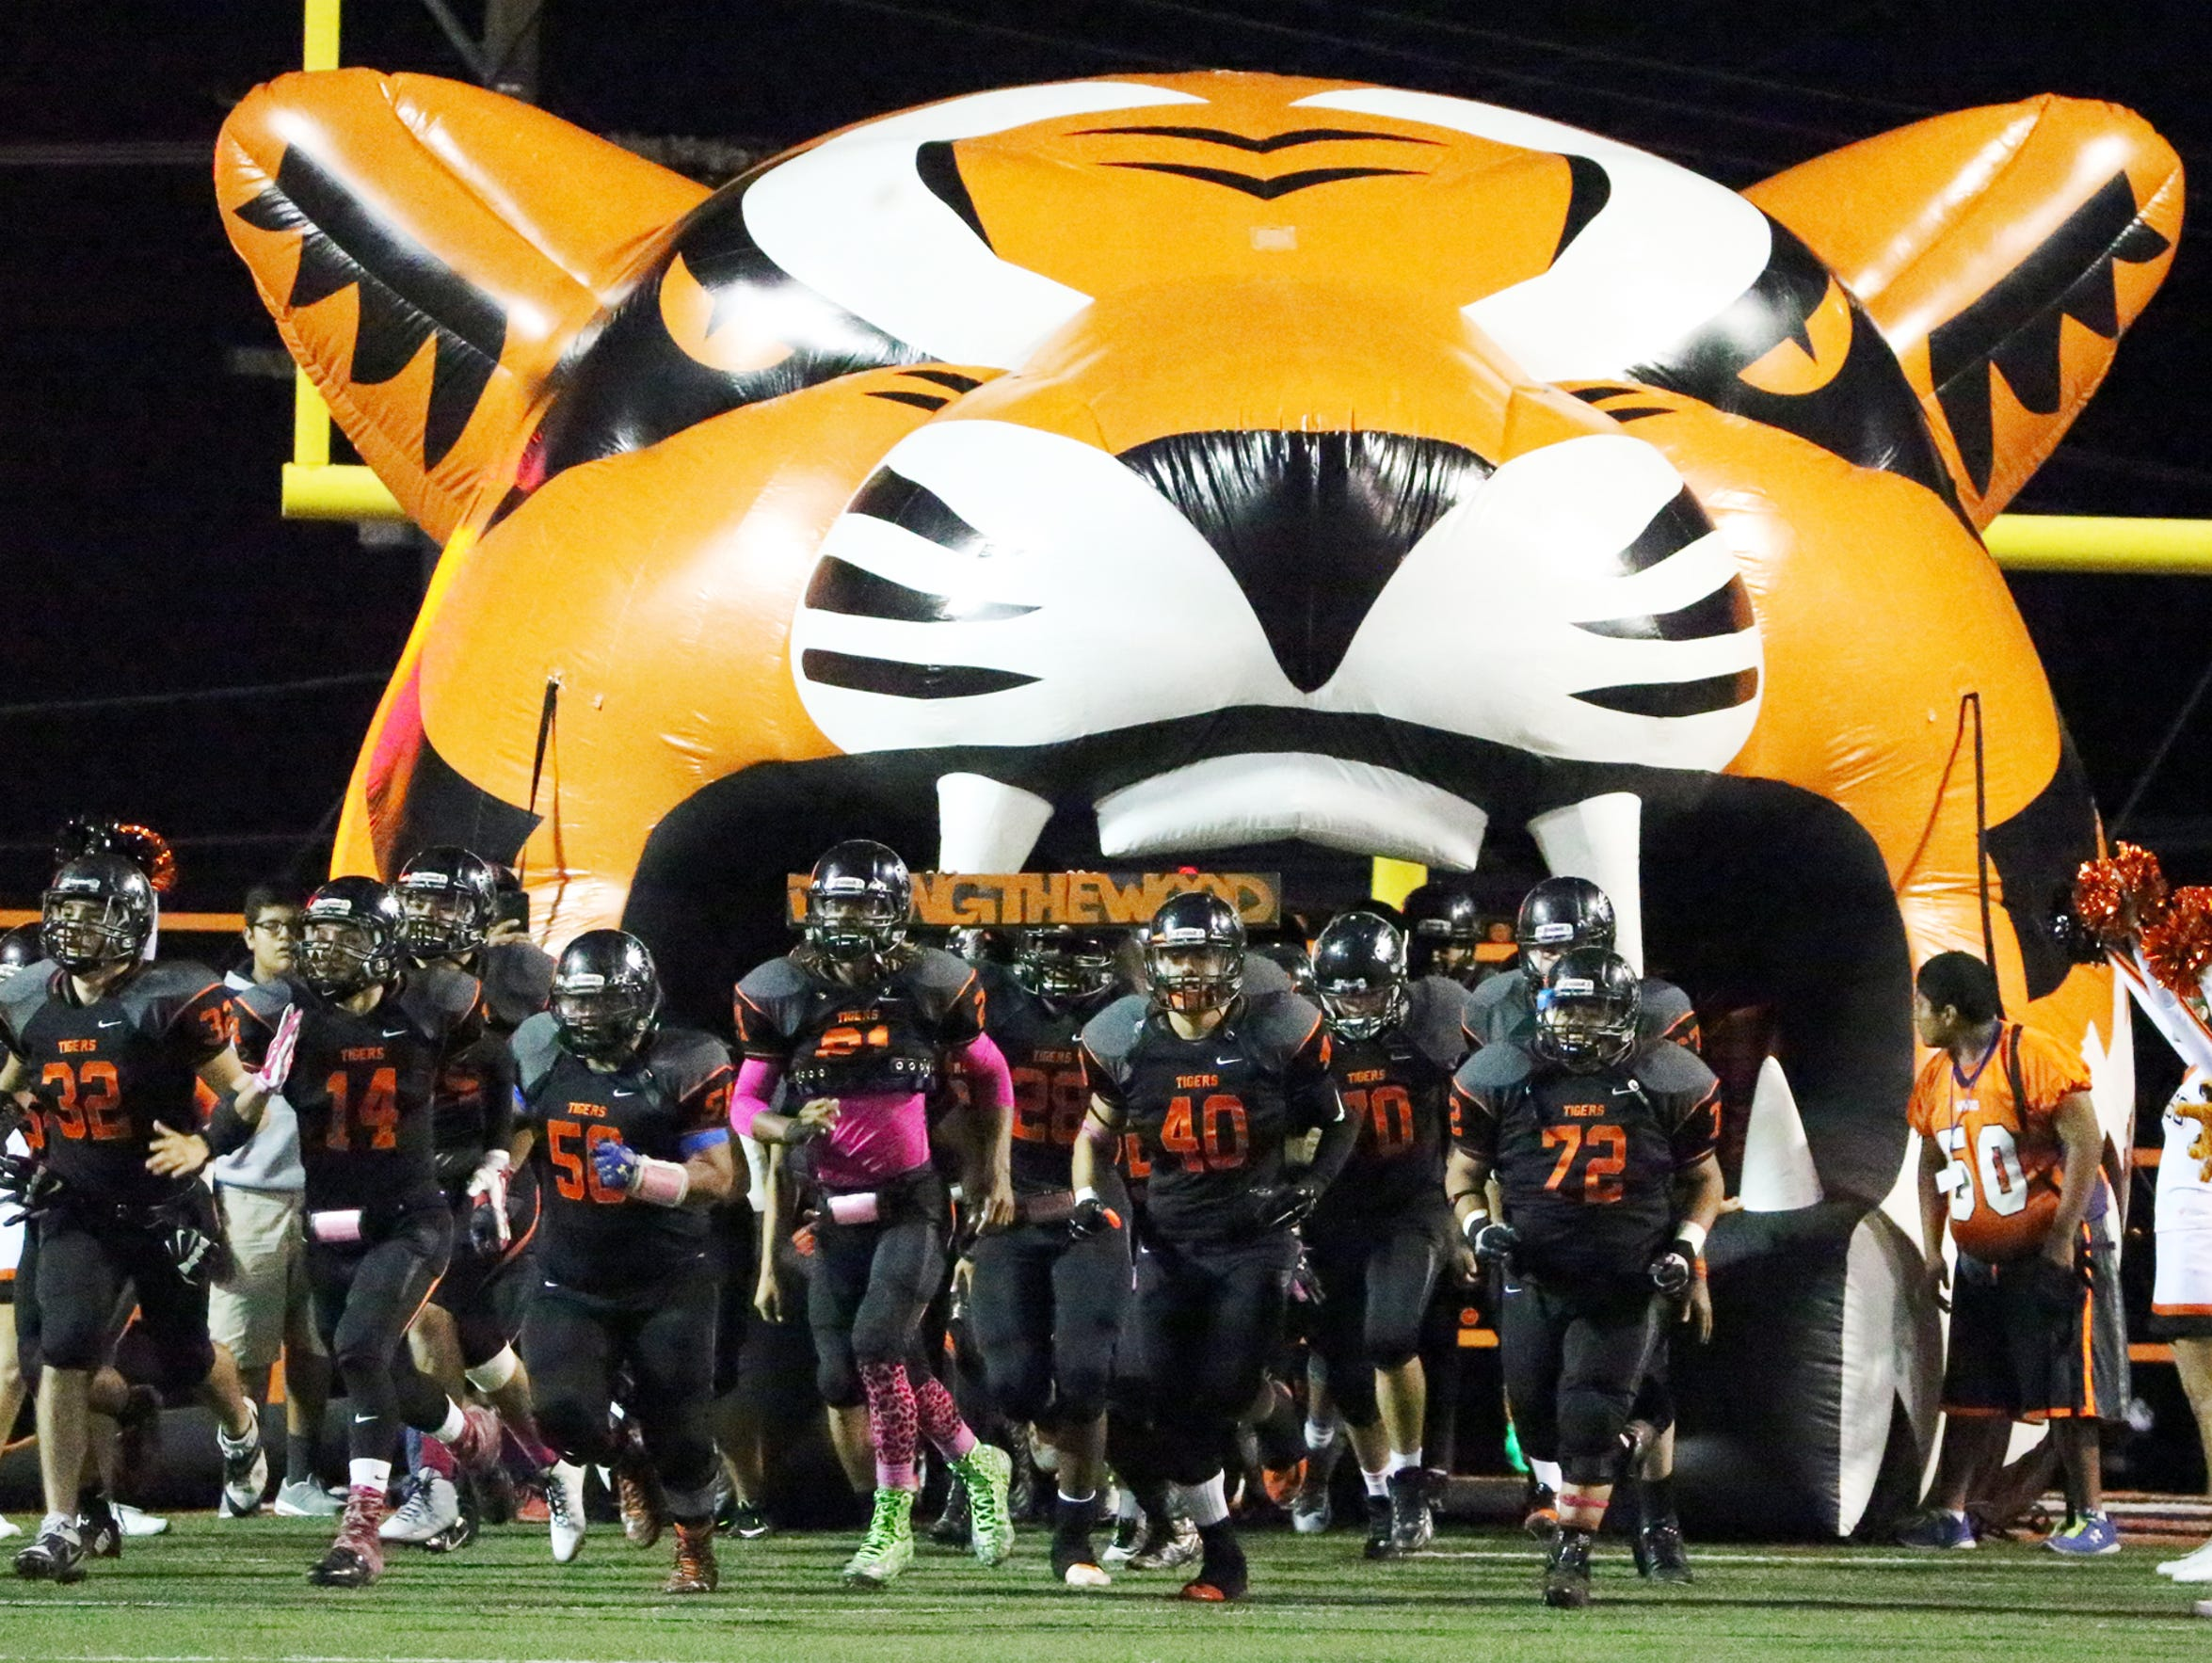 The El Paso High Tigers rush onto their home field